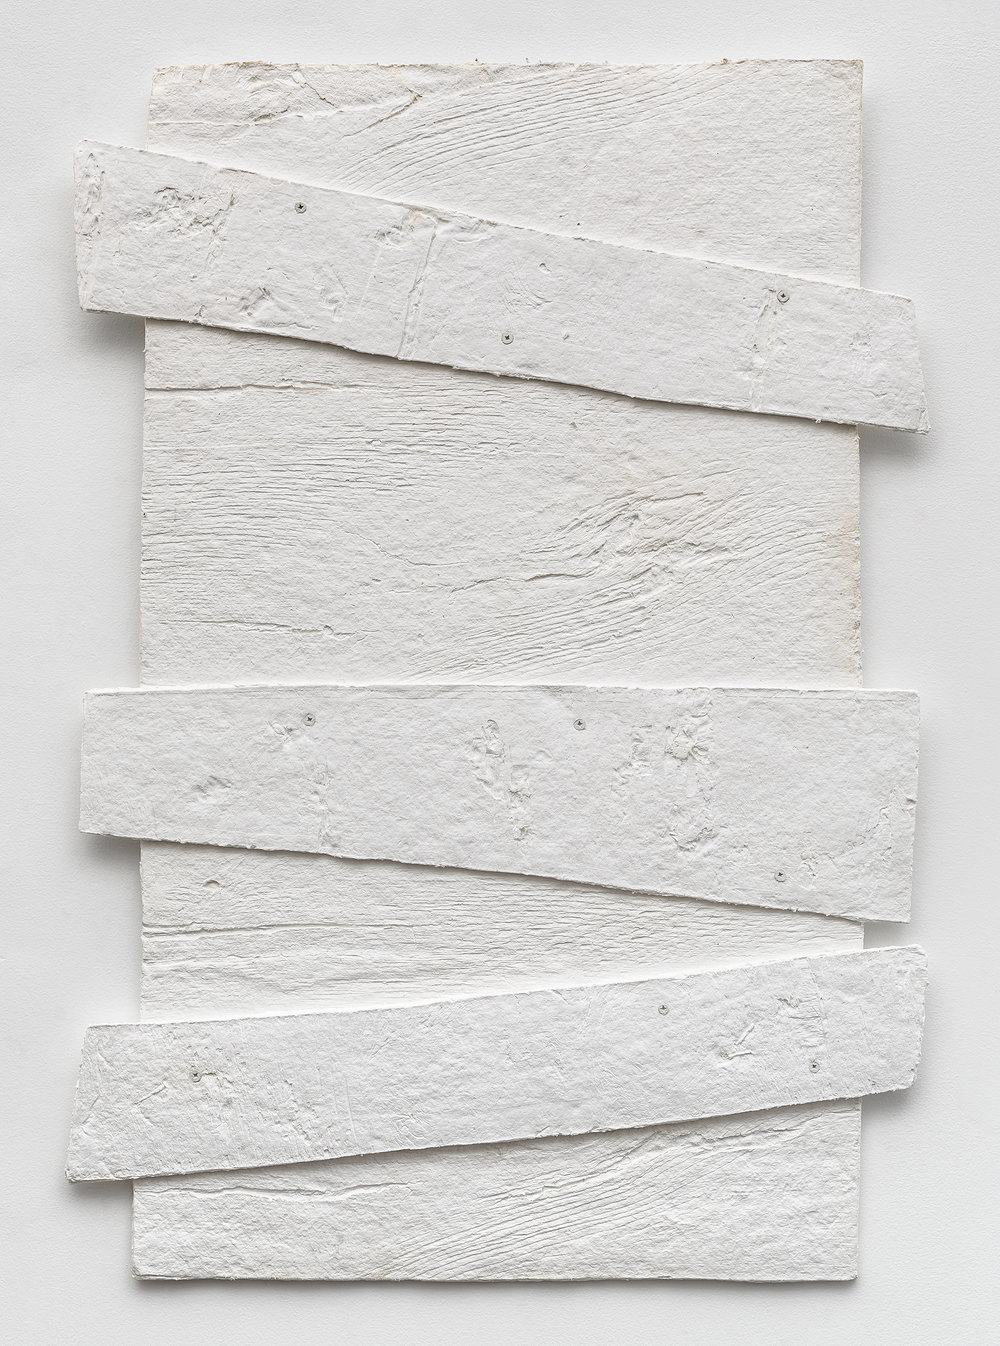 Diana Shpungin   Don't Let The Light In 3 (White) , 2018  Casting cotton paper pulp, linen paper   34 x 27 x 1 inches  Image copyright and courtesy of Etienne Frossard.